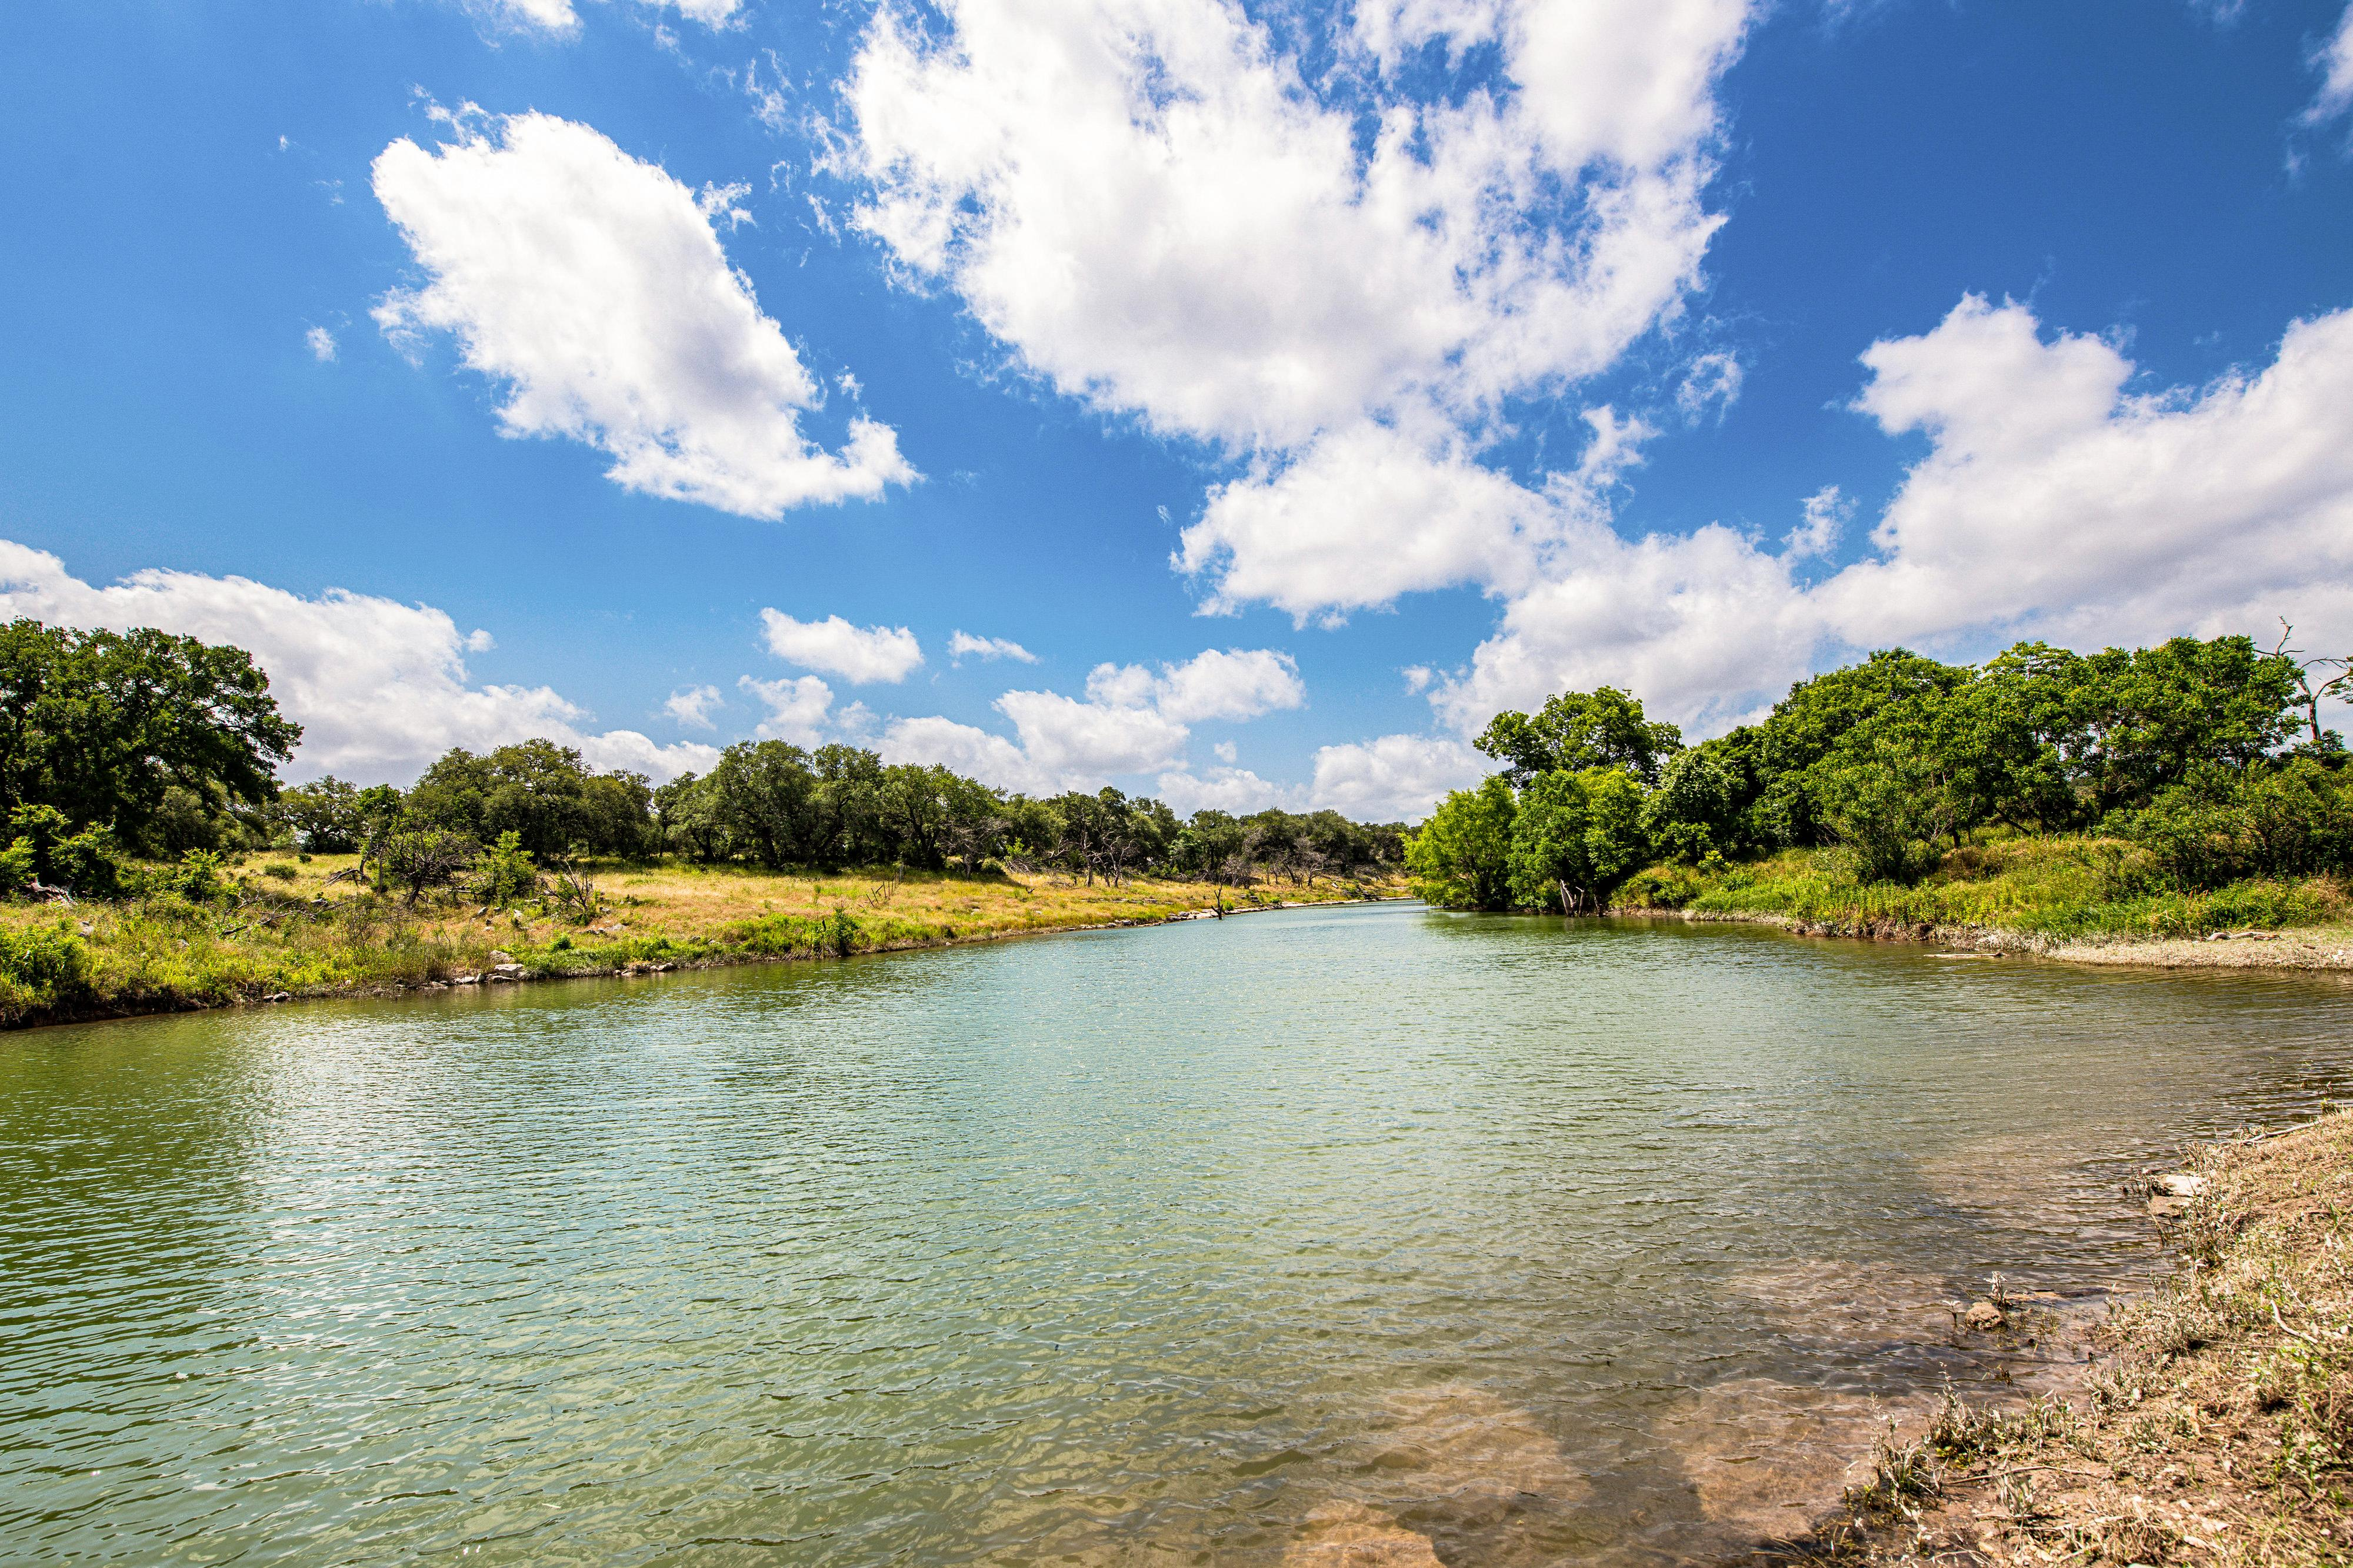 Take a hike to discover the beauty of the surrounding Texas Hill Country.